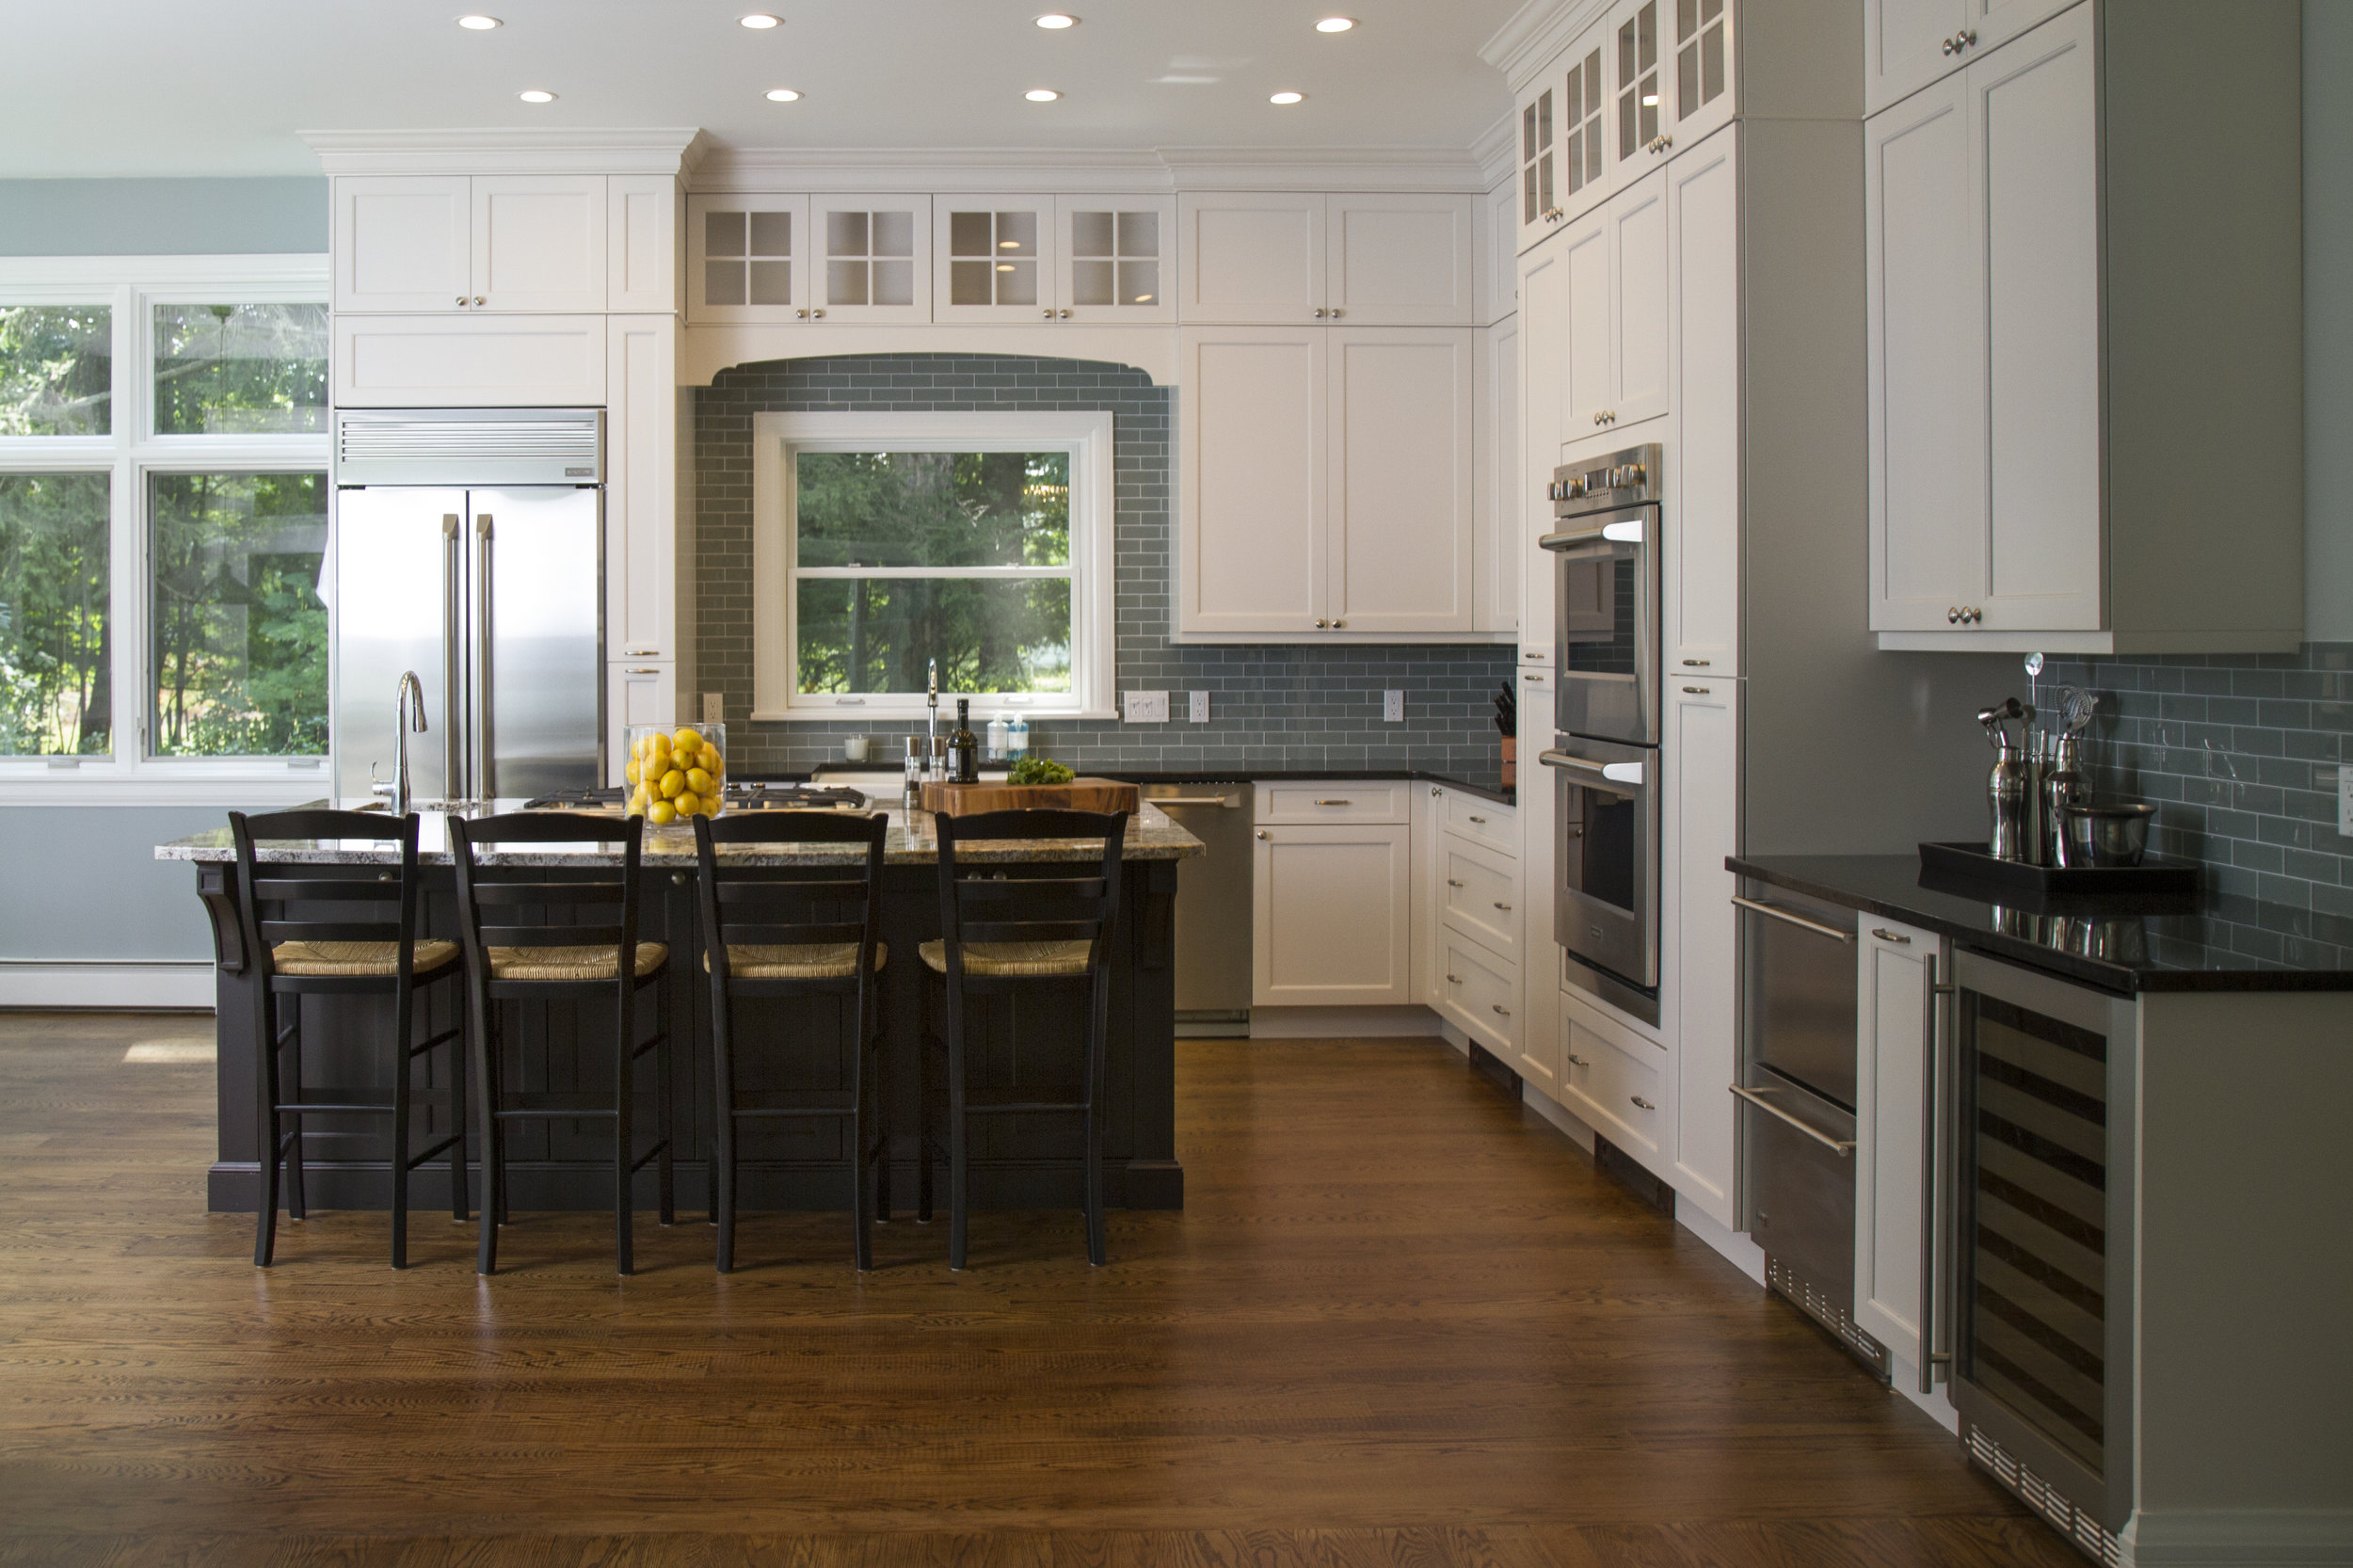 Sometimes, the best way to achieve your goal is a blend of custom and standard. A semi-custom kitchen like this one is a good example of how and where to compromise. It's more reasonably priced than a fully custom kitchen, but it allows you to make small adjustments to accommodate awkward spacing or sizing issues, or to add components that are must-haves for you personally.